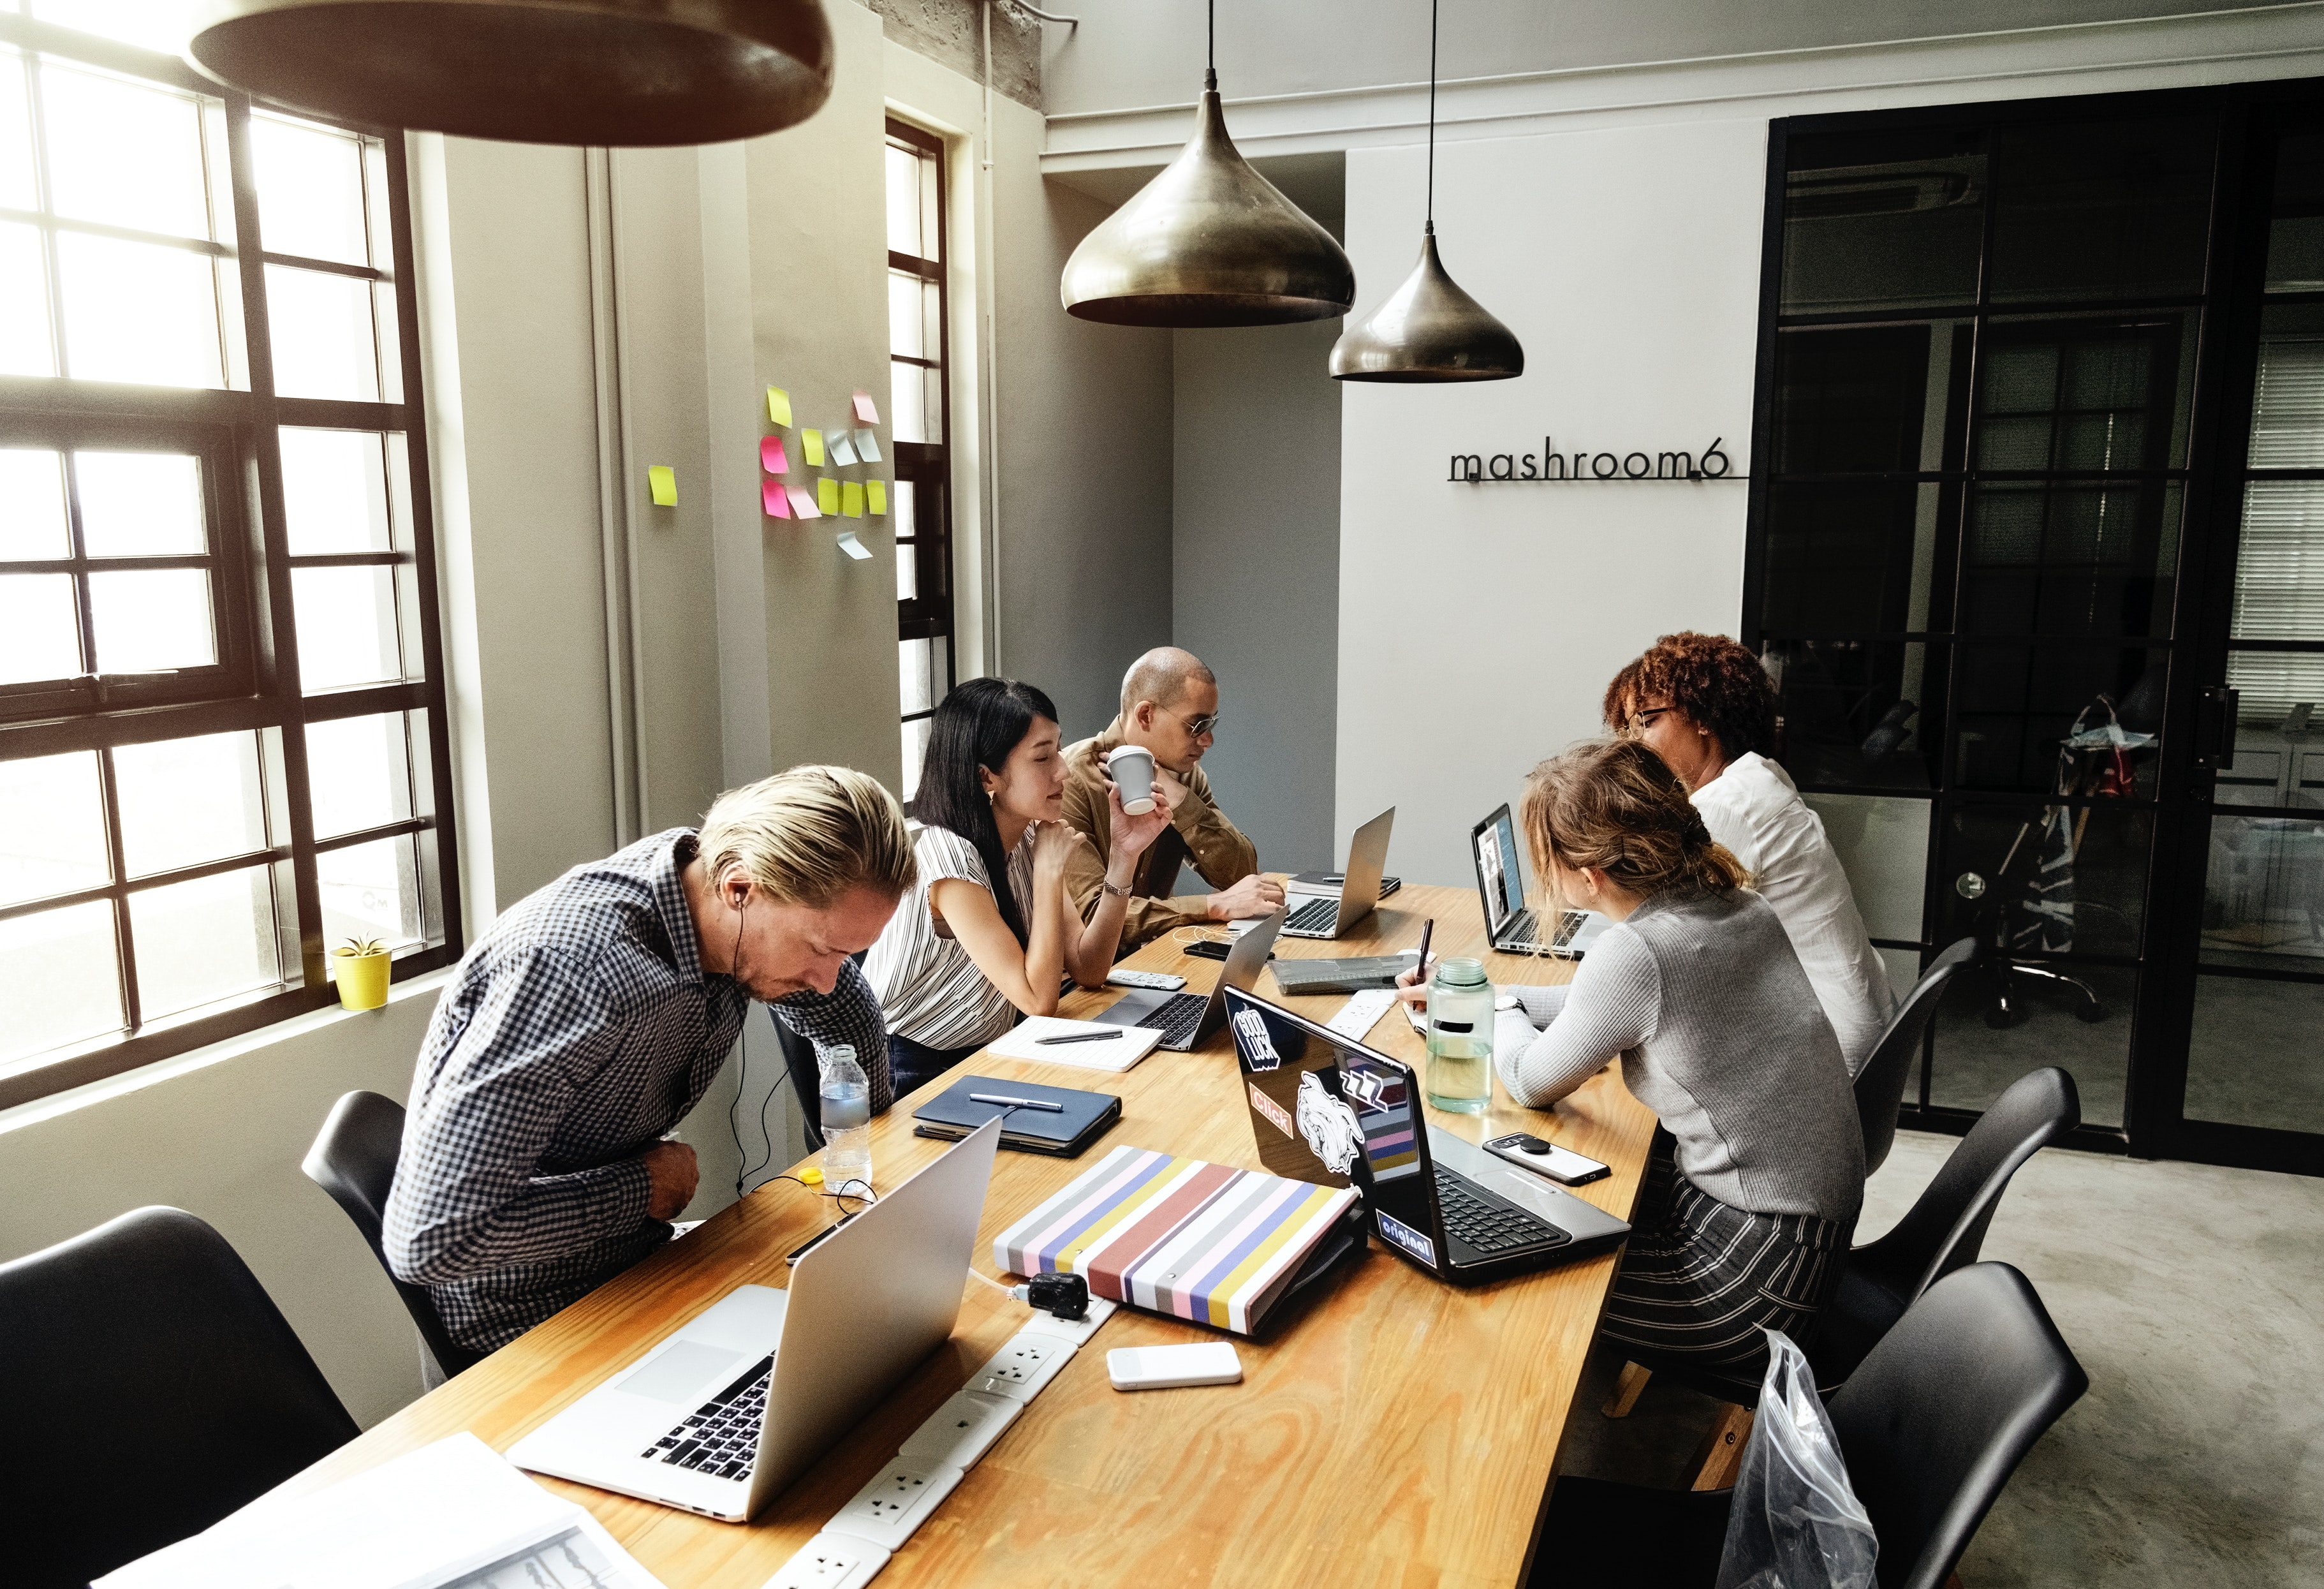 brainstorming-colleagues-communication-1204649